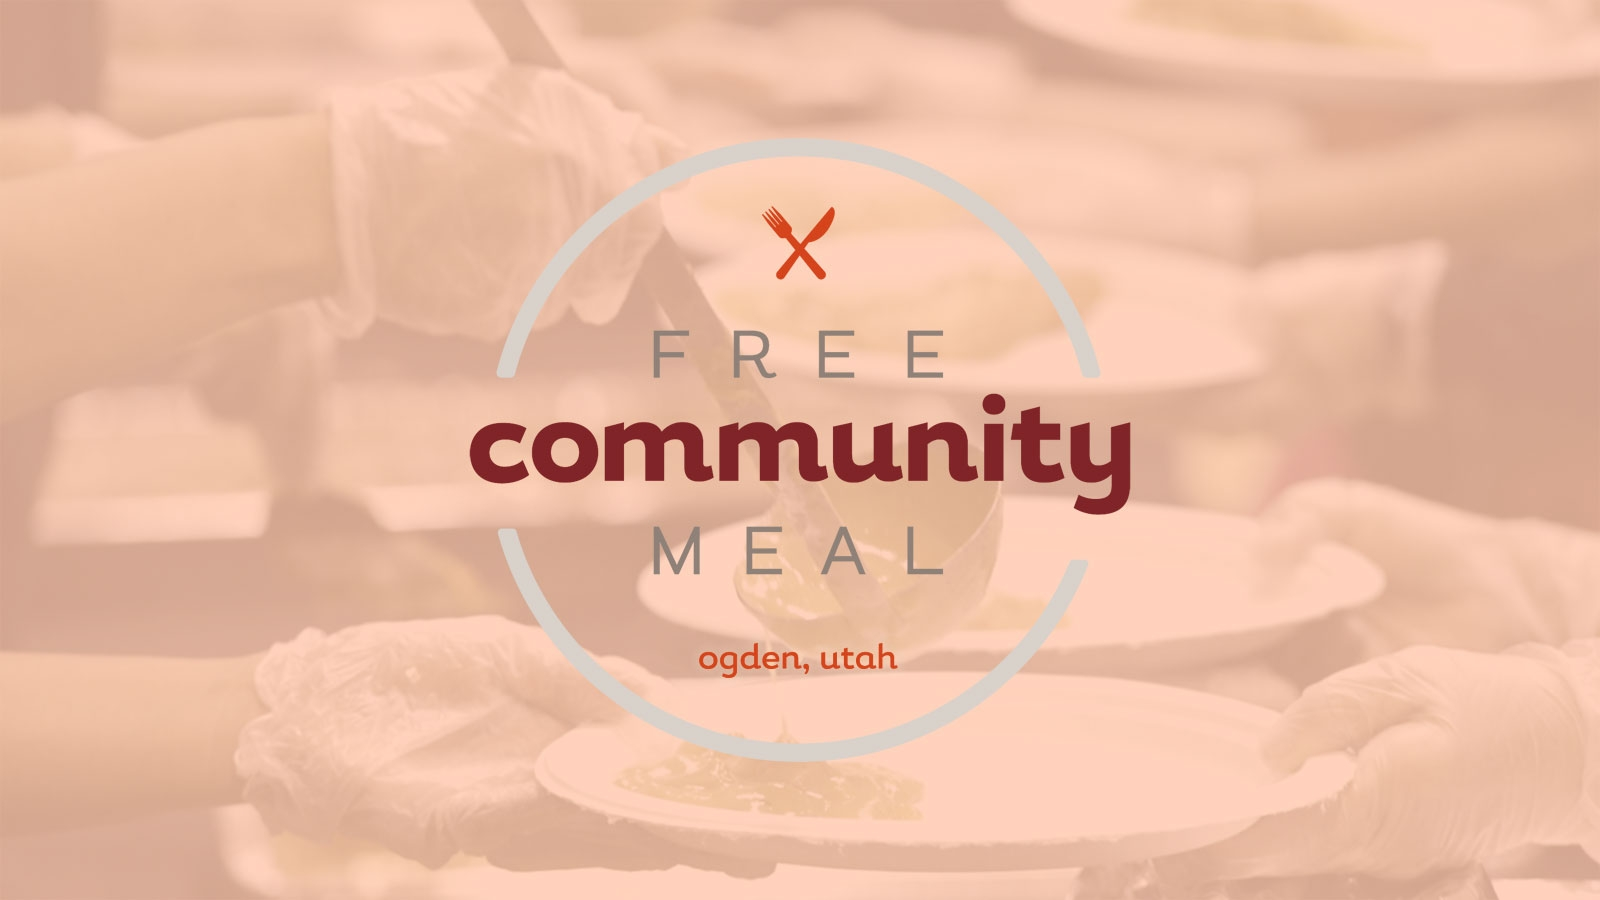 Free Community Meal of Ogden